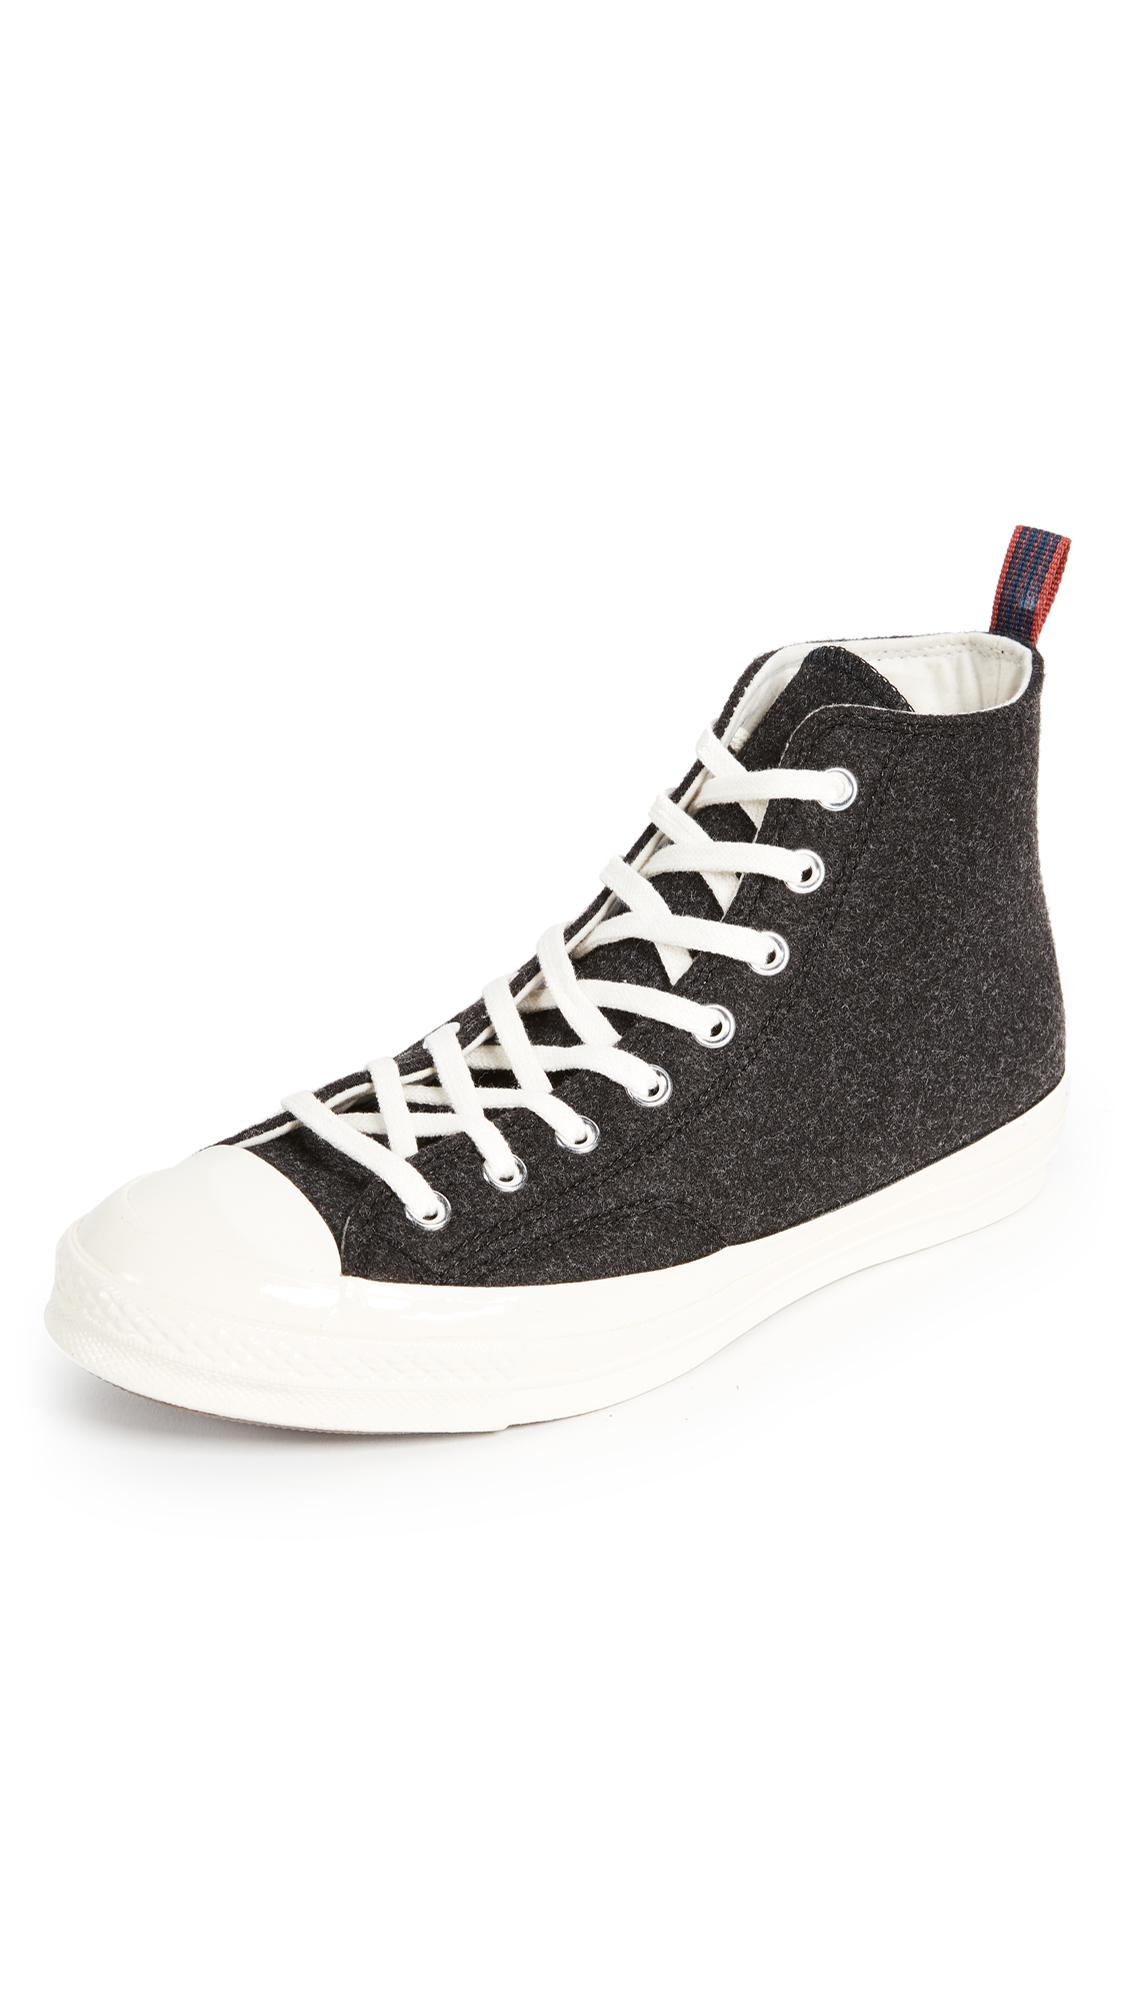 d5f07d675ce Converse Chuck Taylor  70s Heritage Felt High Top Sneakers in Black ...